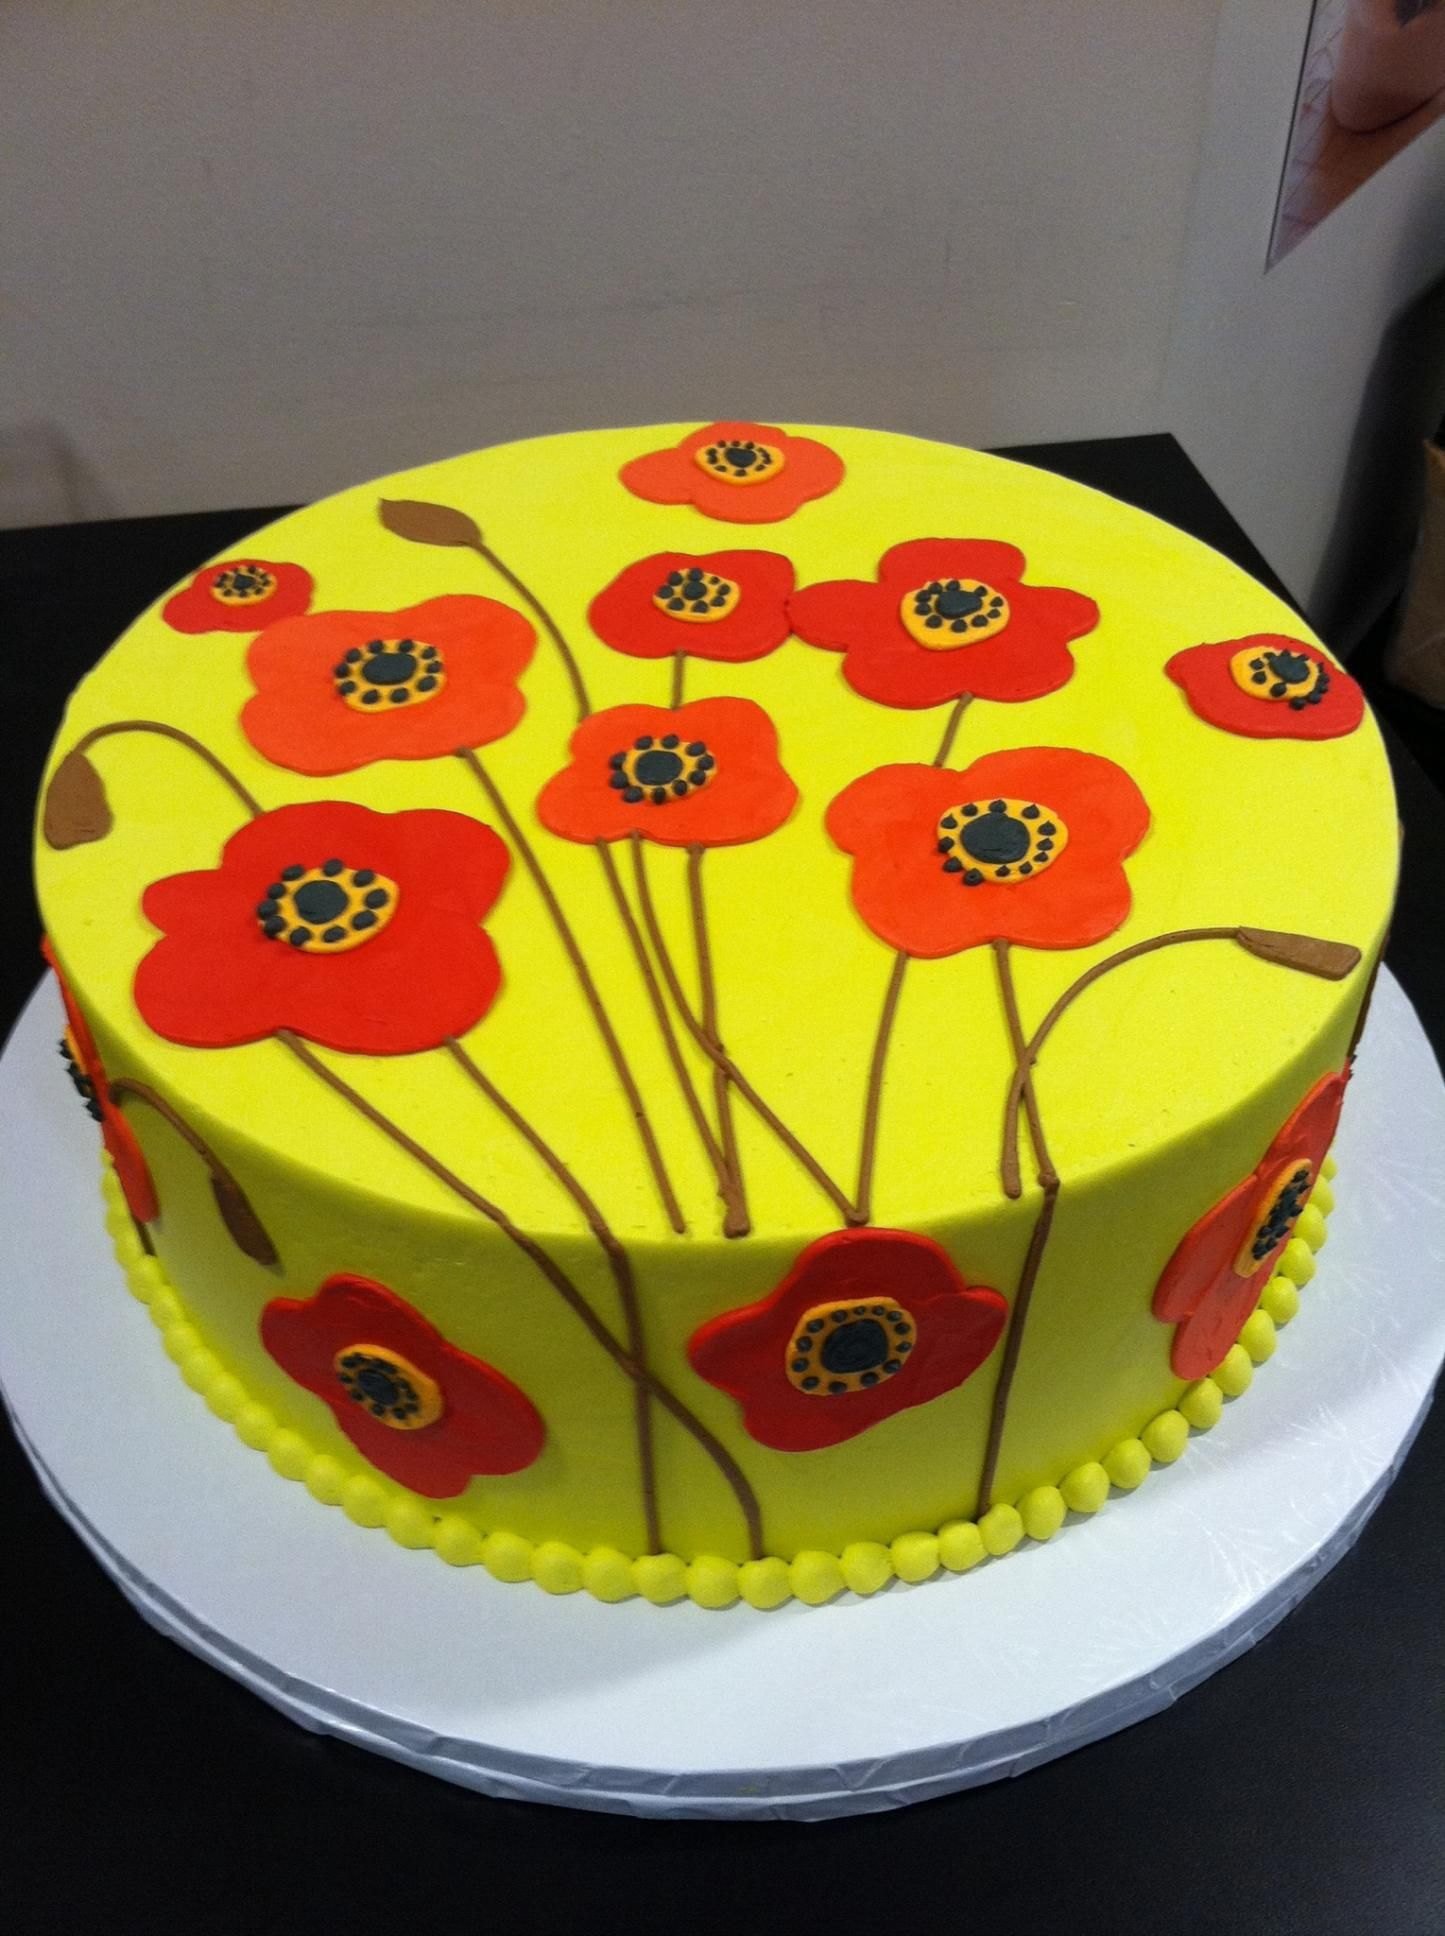 Poppy cake by the white flower cake shoppe its all about that poppy cake by the white flower cake shoppe dhlflorist Image collections